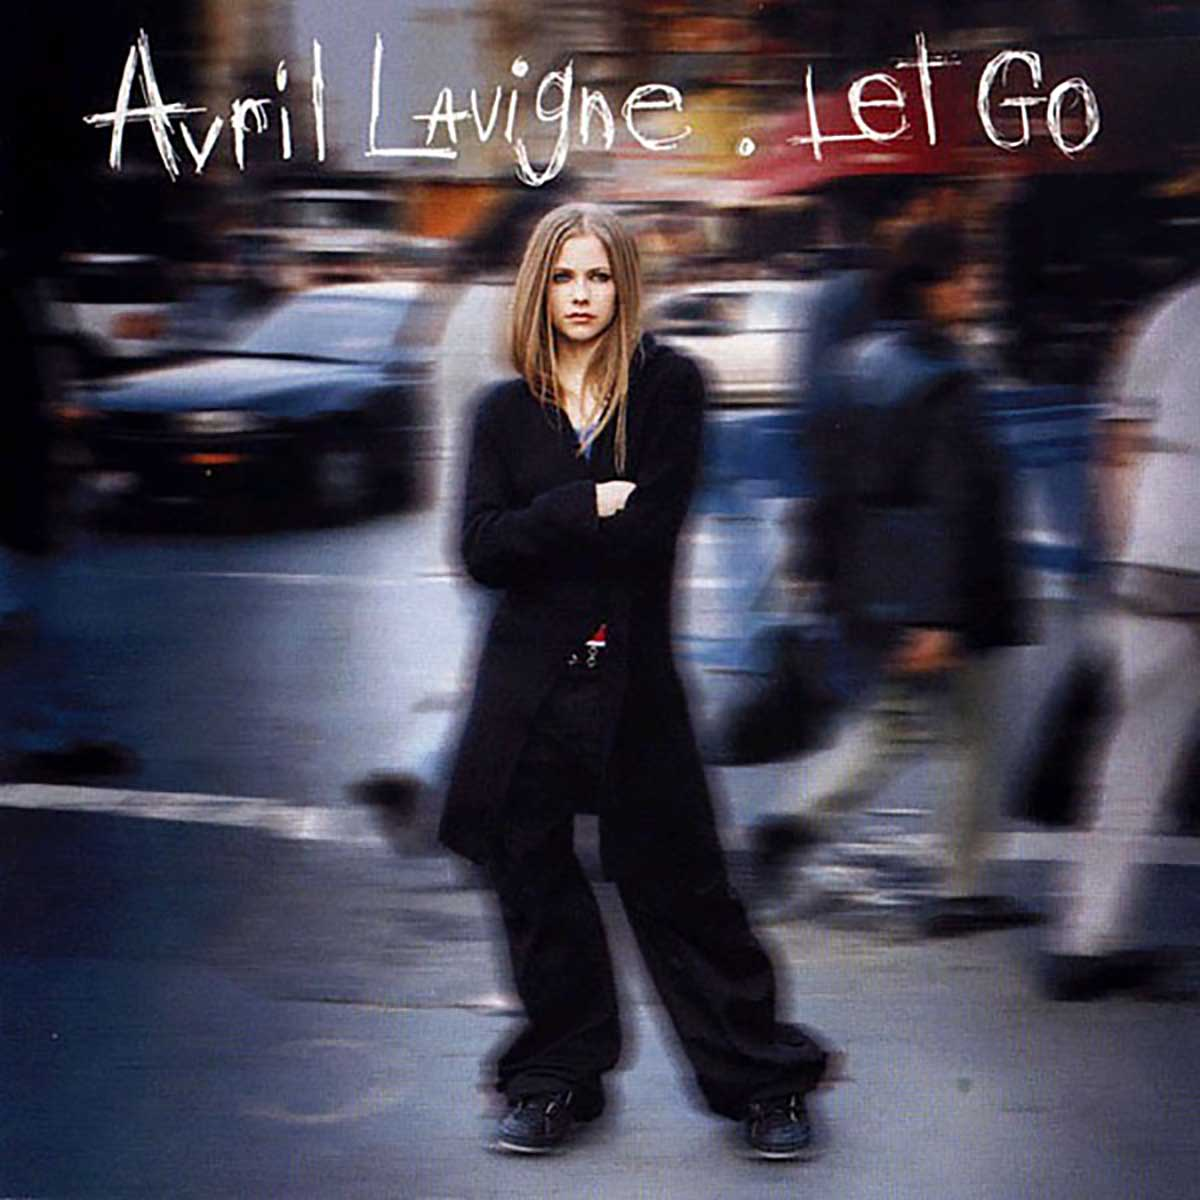 Avril Lavigne - Let Go